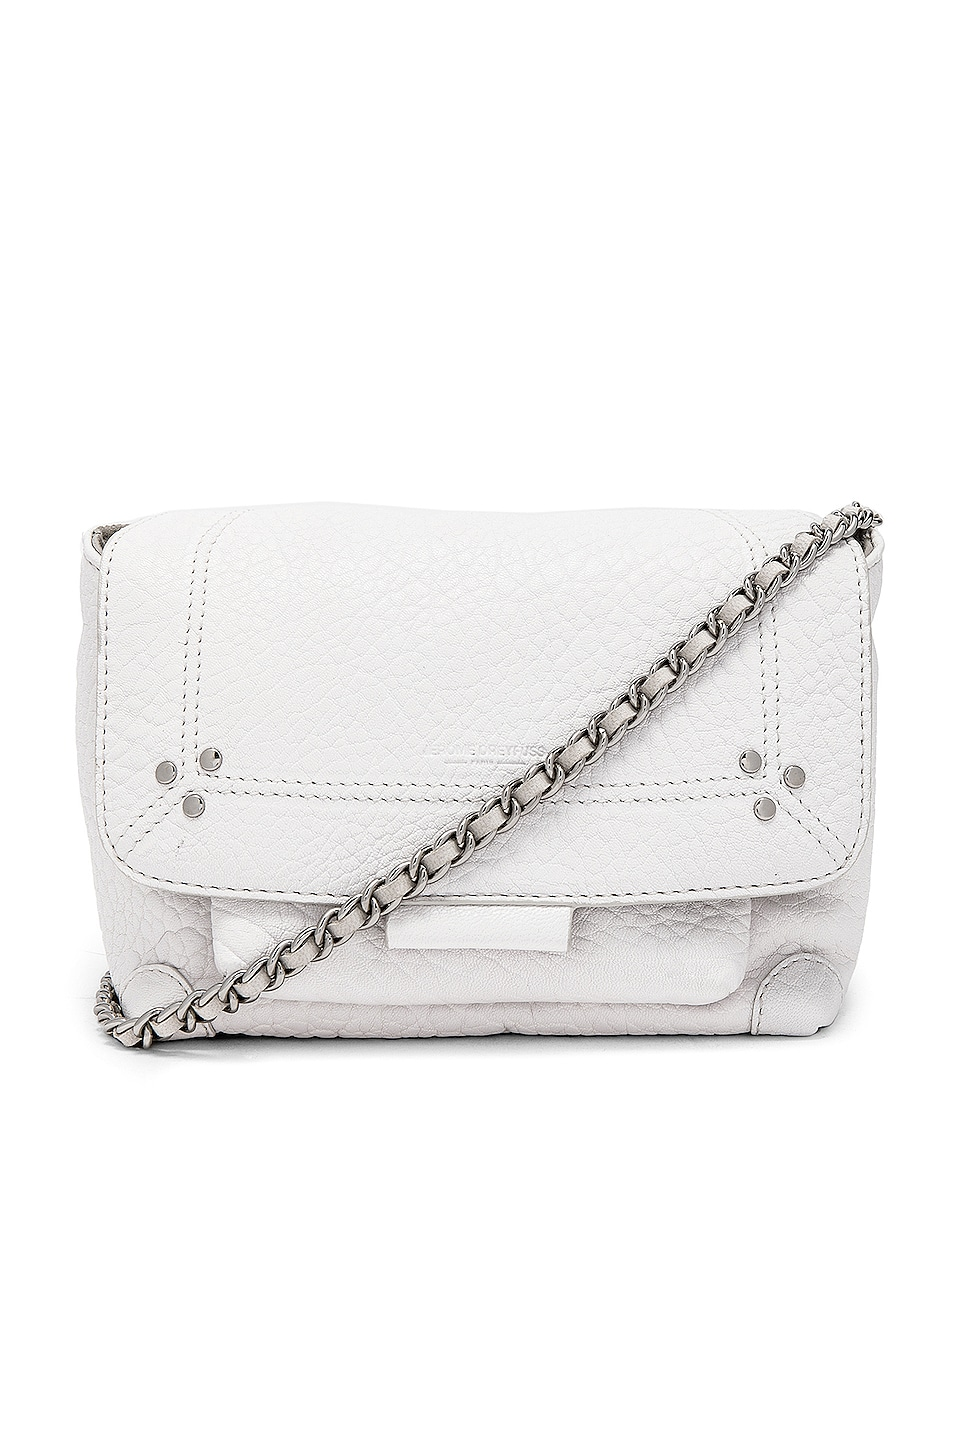 Jerome Dreyfuss Lulu Small Shoulder Bag in Blanc